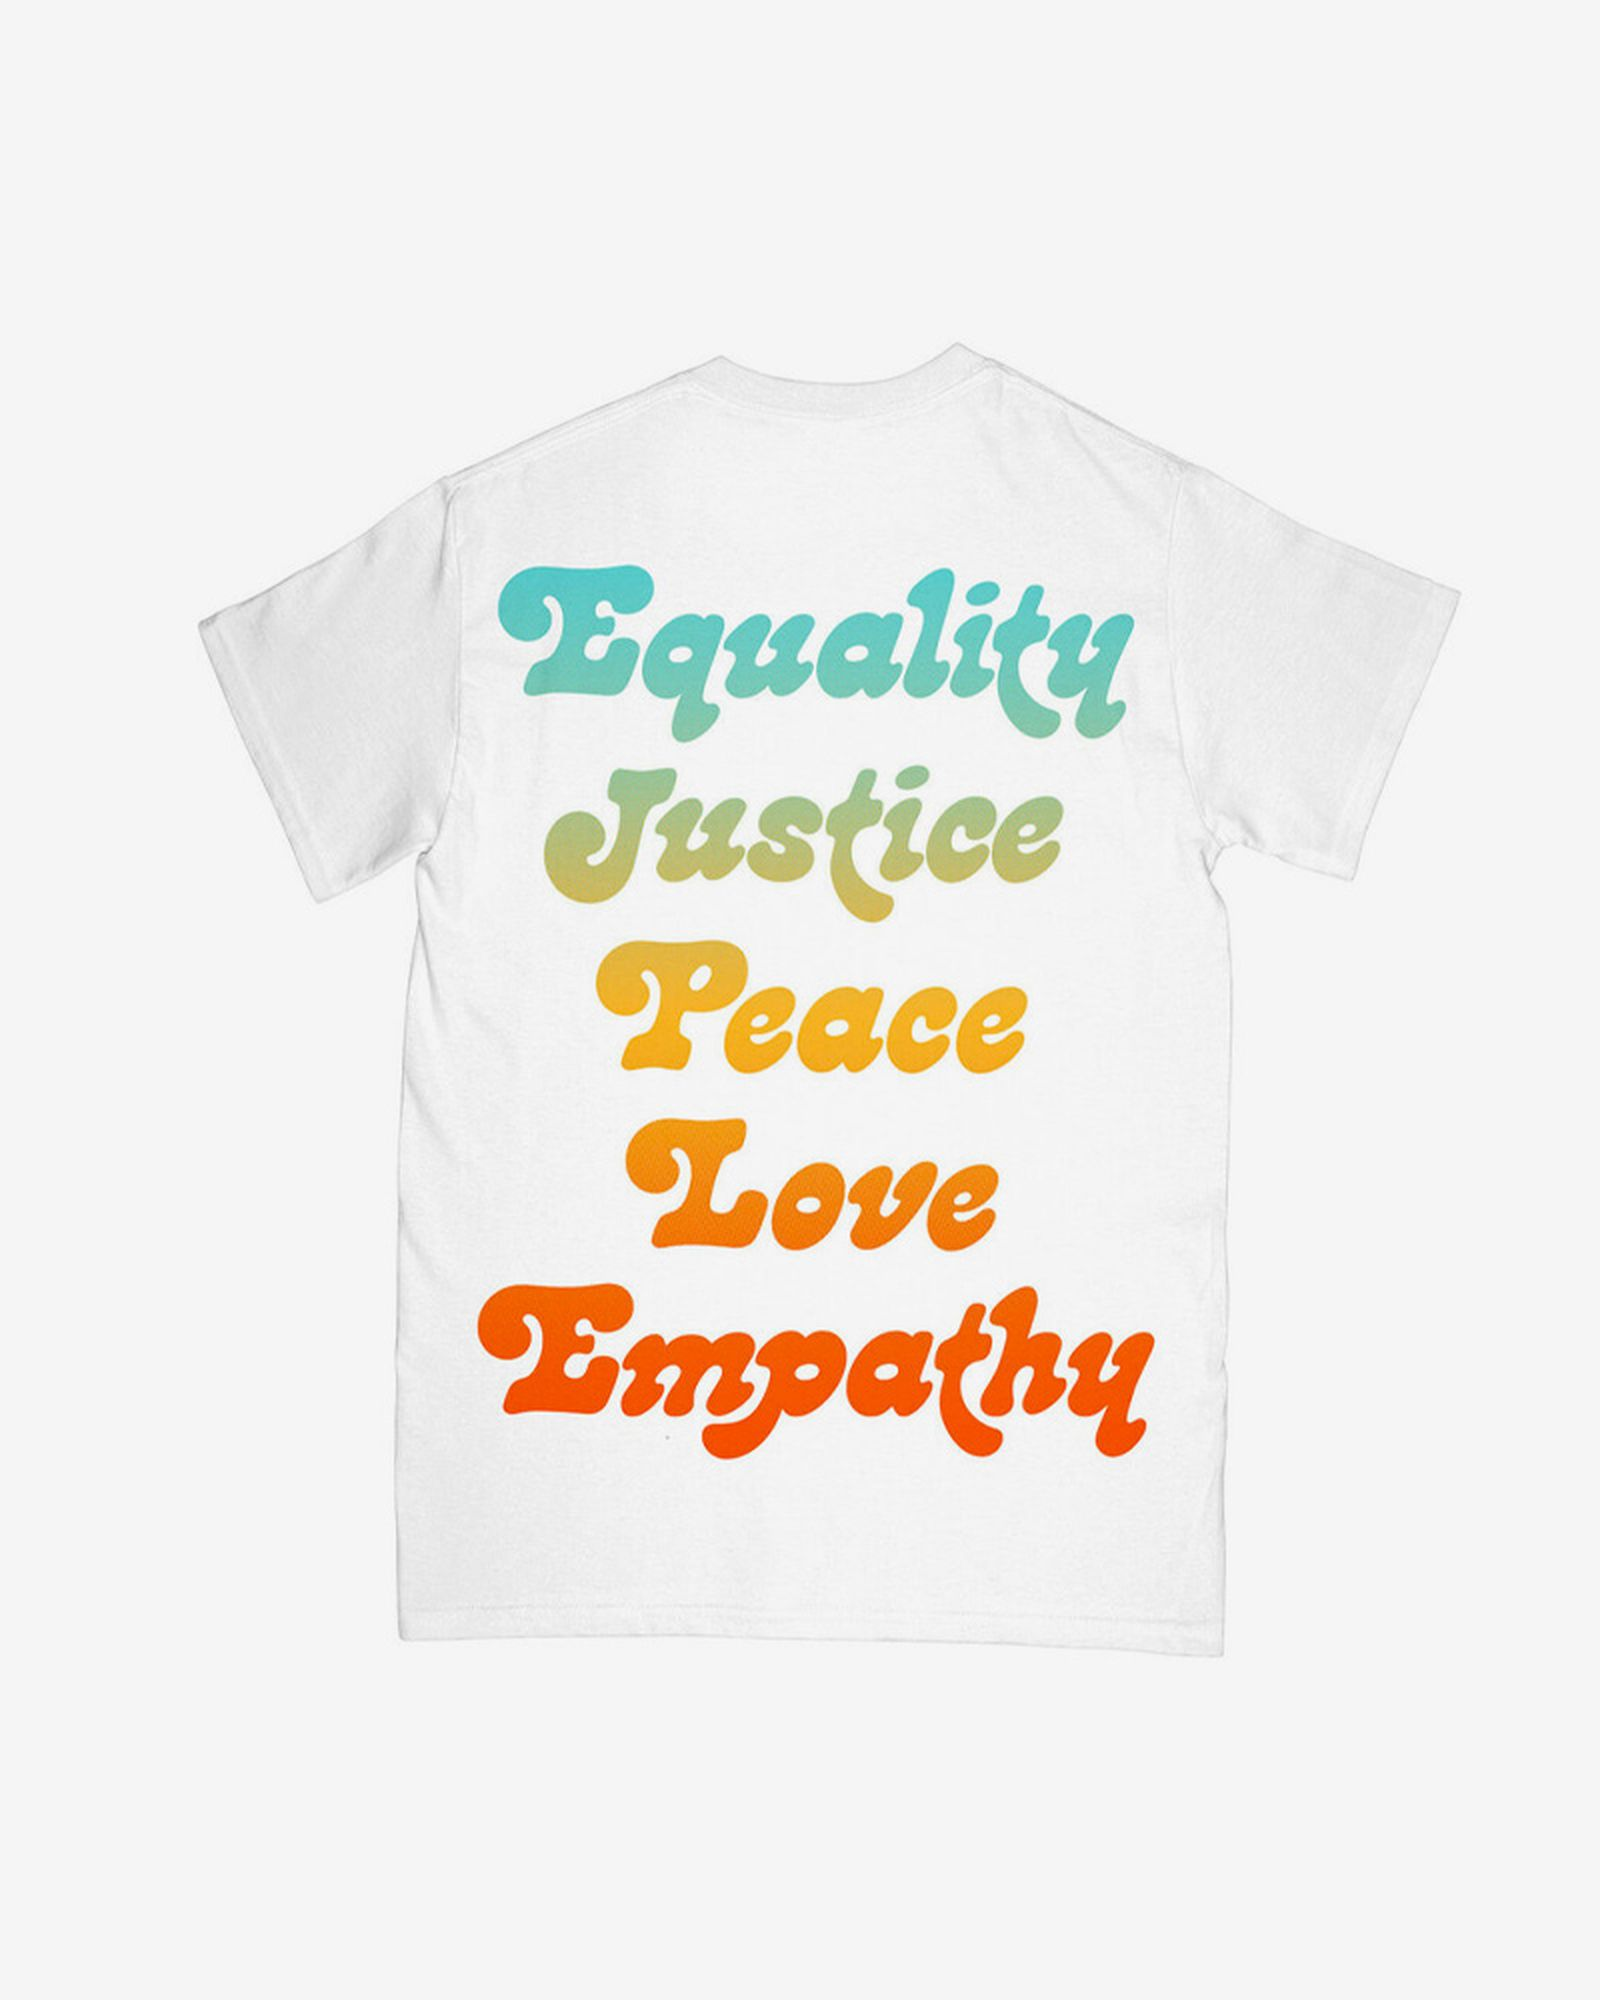 support-black-lives-matter-causes-with-these-charity-t-shirts-and-more-2-23